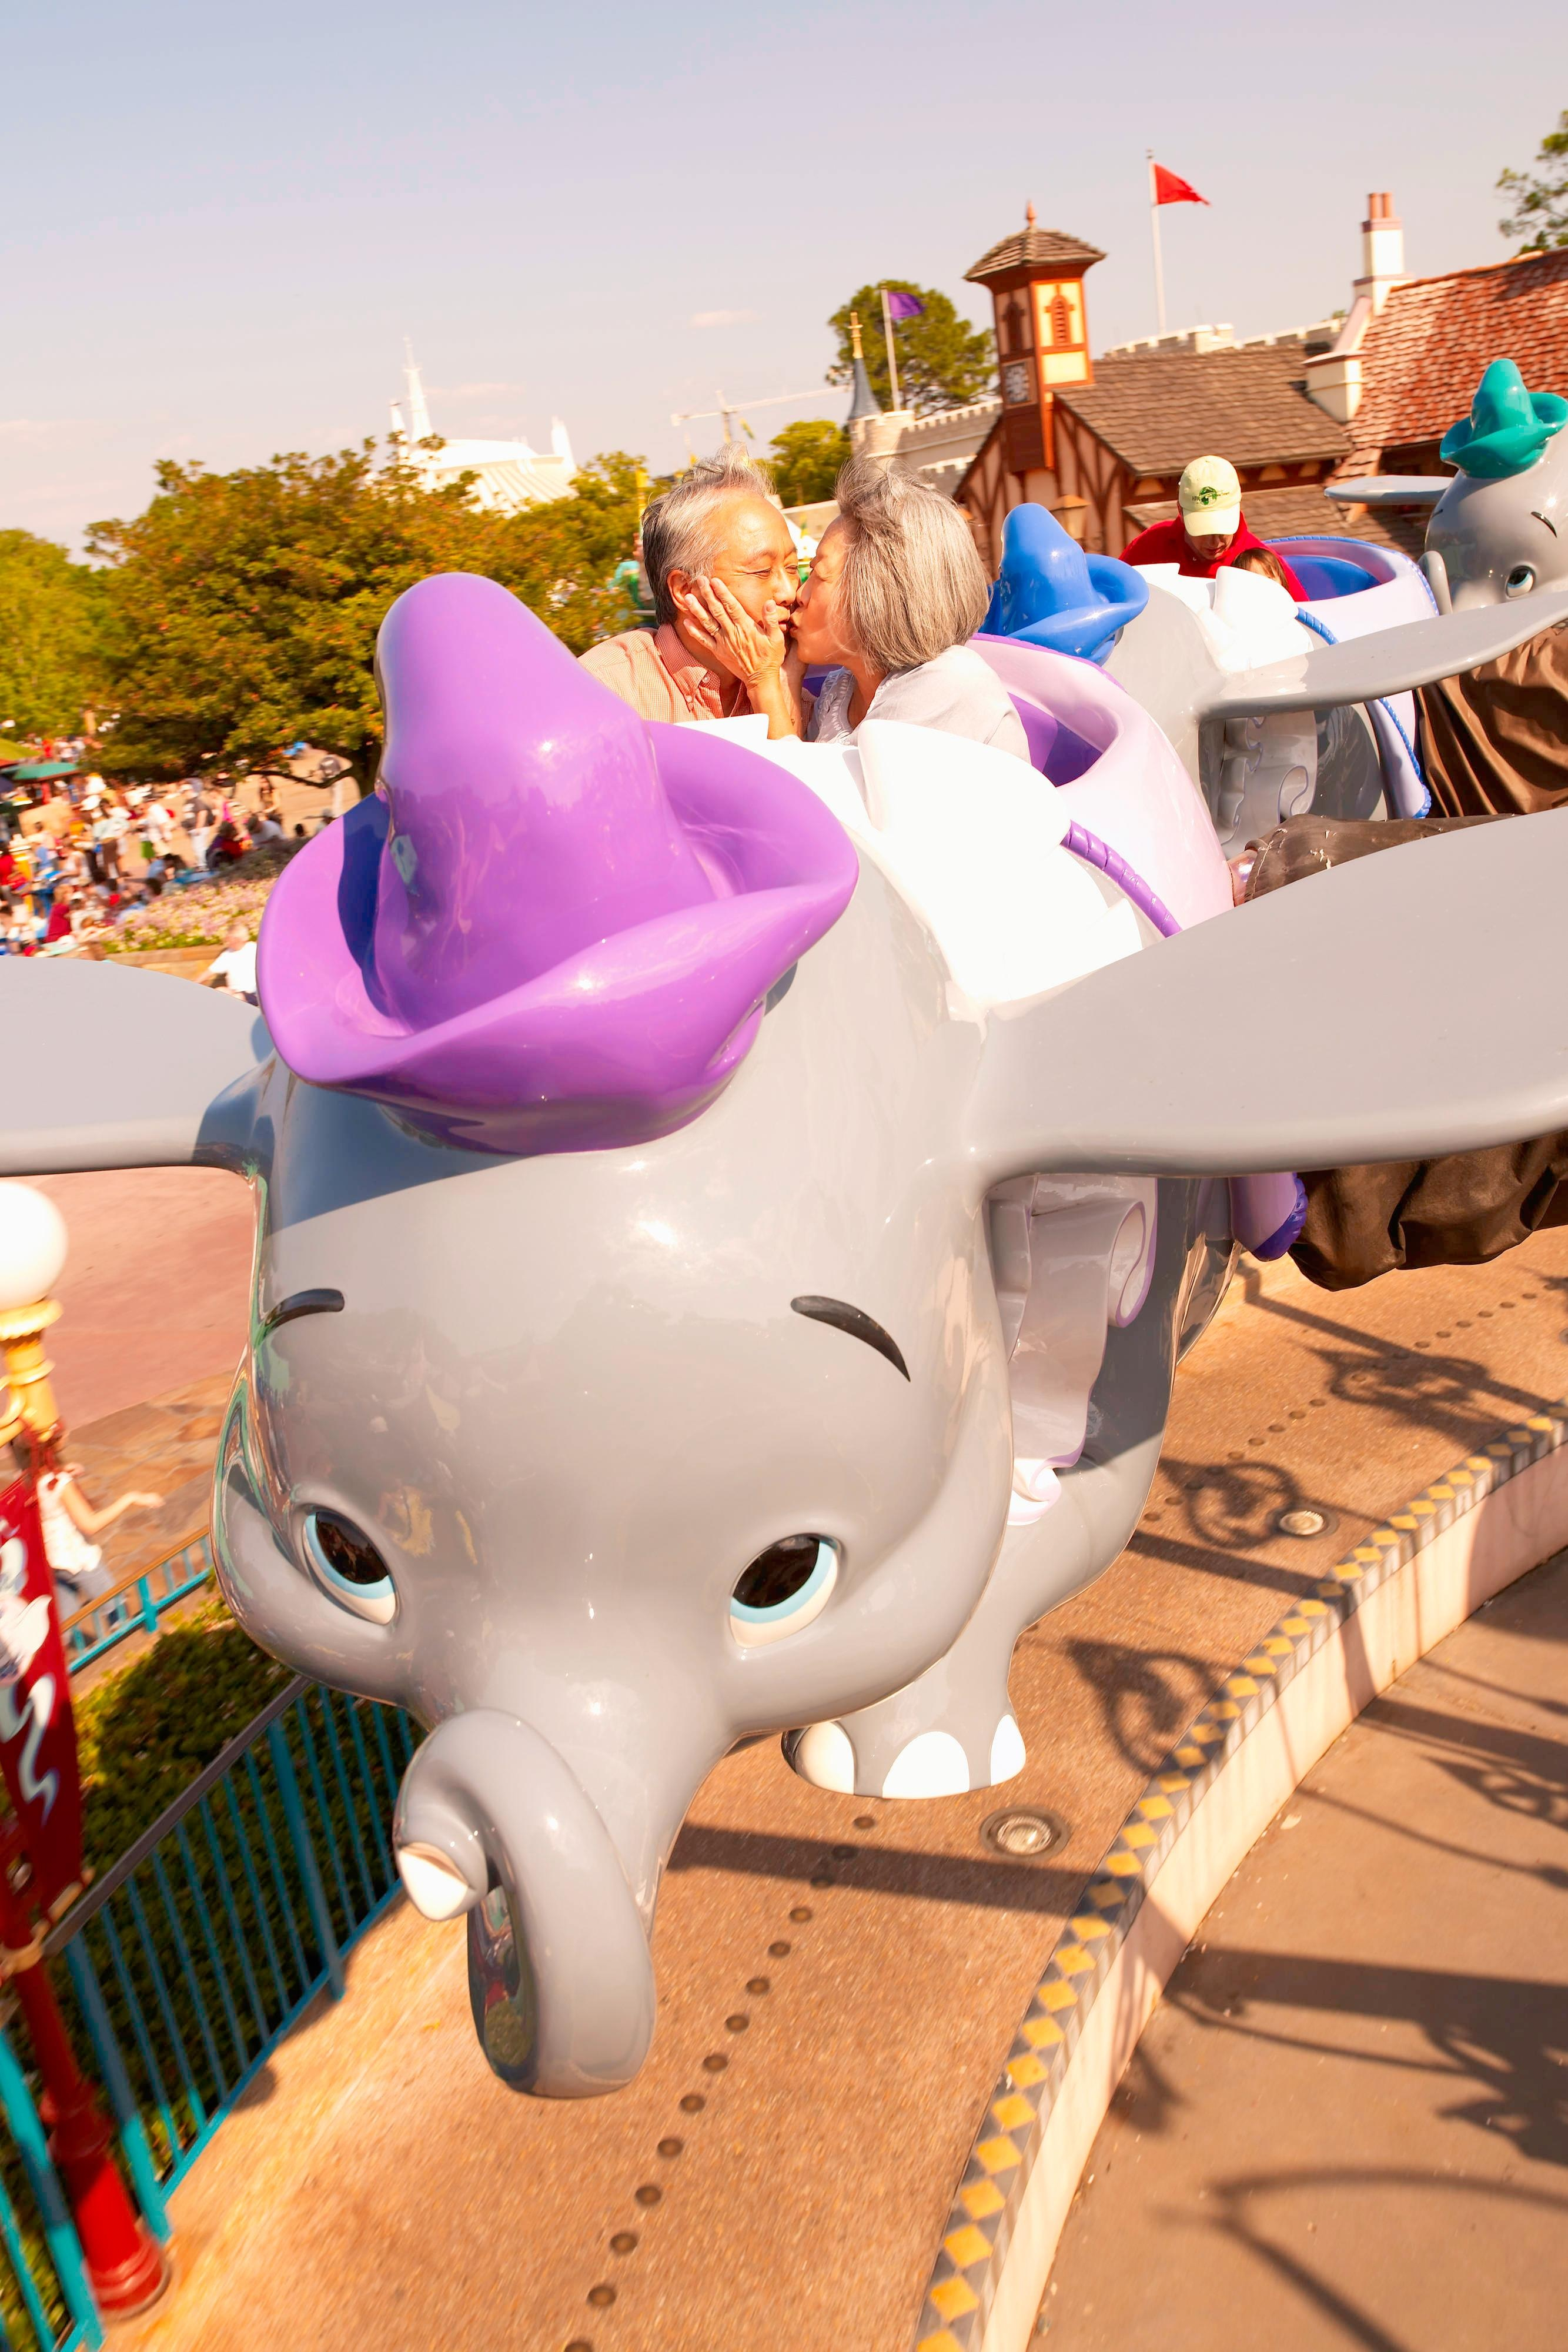 Walt Disney World Dumbo Ride